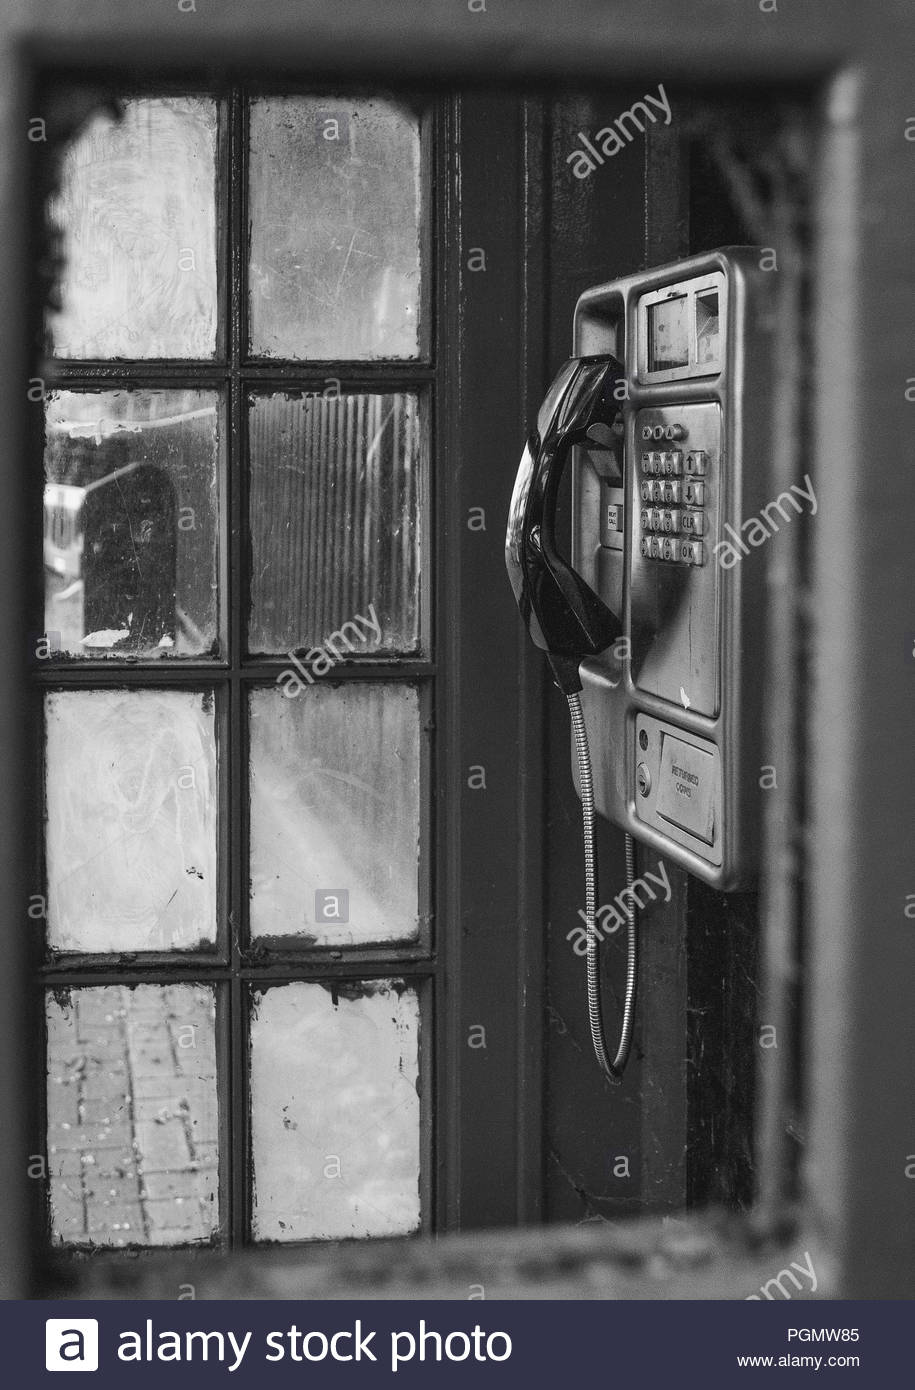 Broken phone box on a London street. This hasn't been used in years, though the phone itself seems to have survived the test of time. - Stock Image